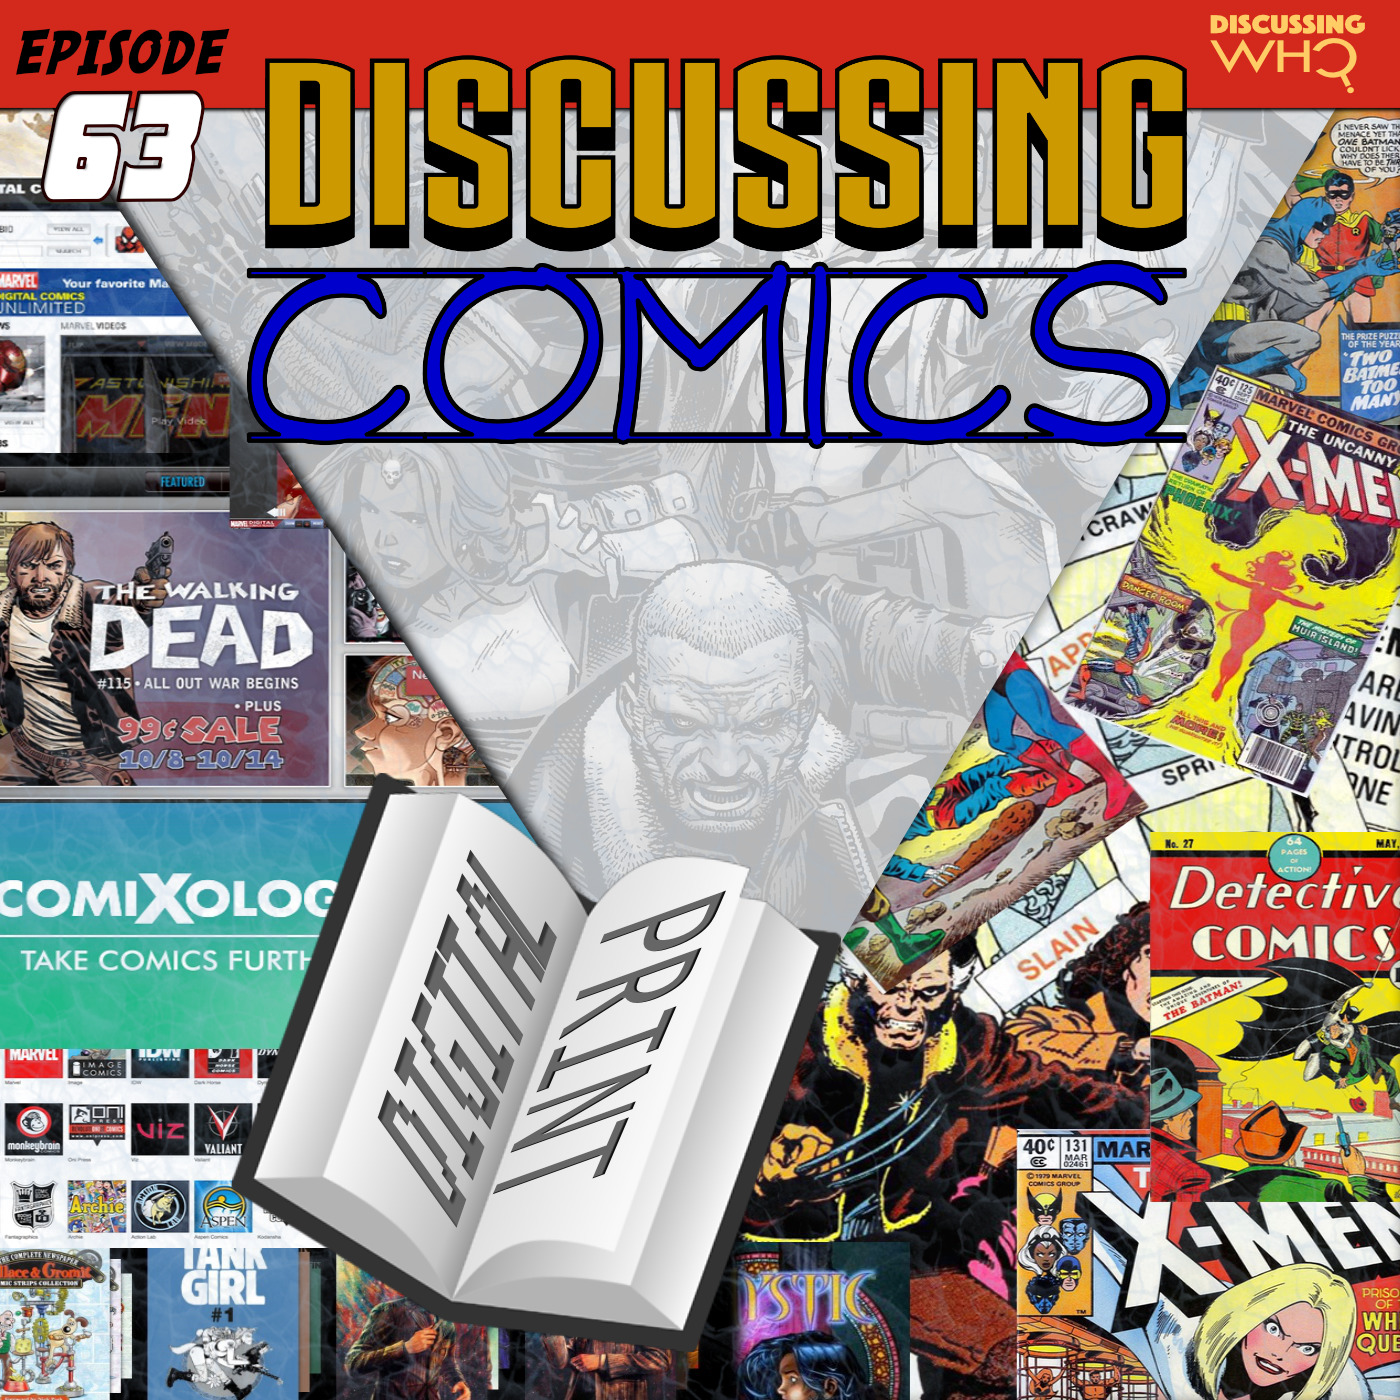 Discussing Comics on YouTube